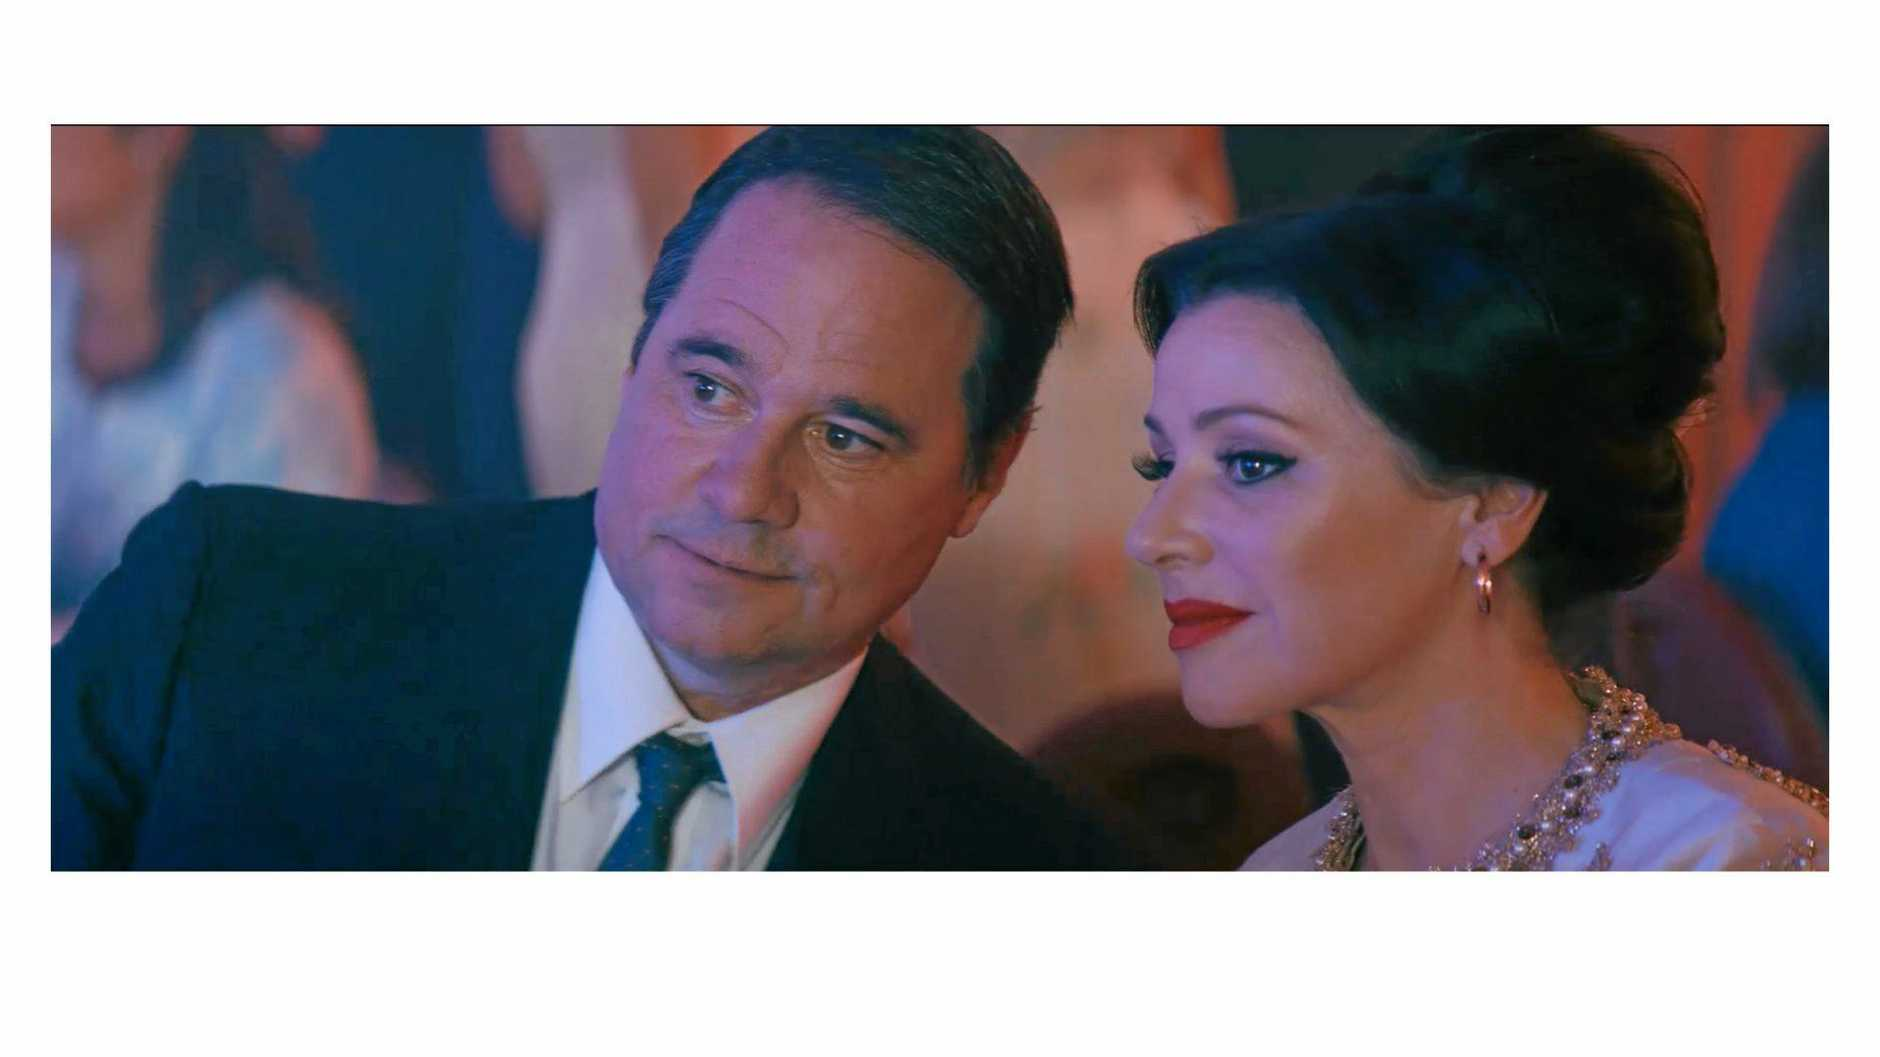 Tina Arena and Paul Mercurio in a scene from the movie Promised, screening at the Italian Film Festival. (supplied by Kathryn McGowan)